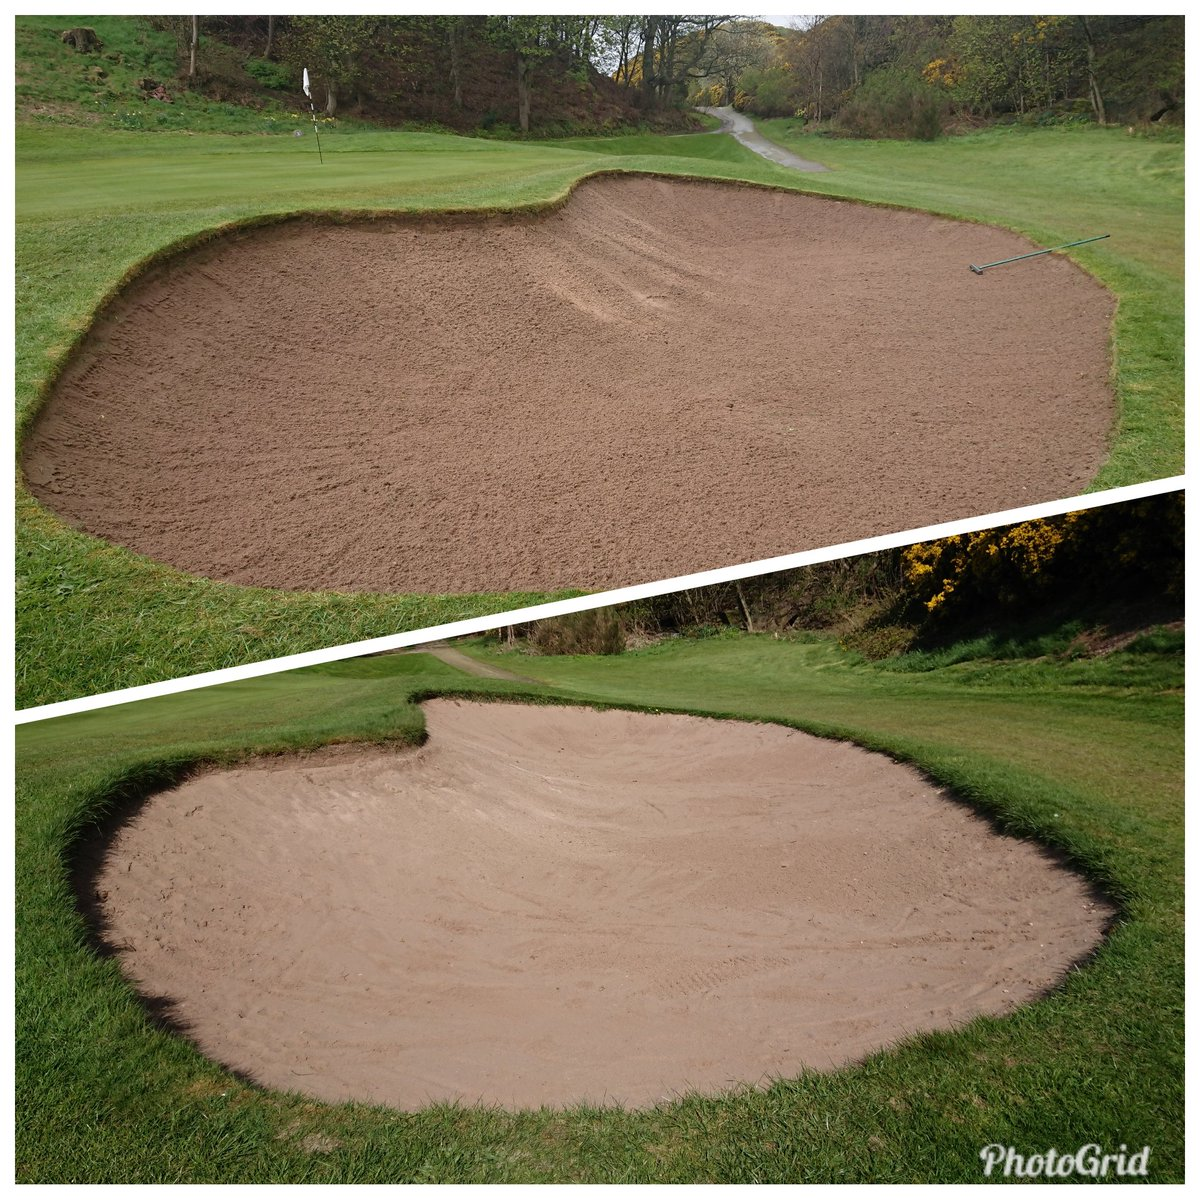 test Twitter Media - Strimming the bunker edges is quite a tedious job but it certainly improves the look of the golf course. https://t.co/dU21X28wkT